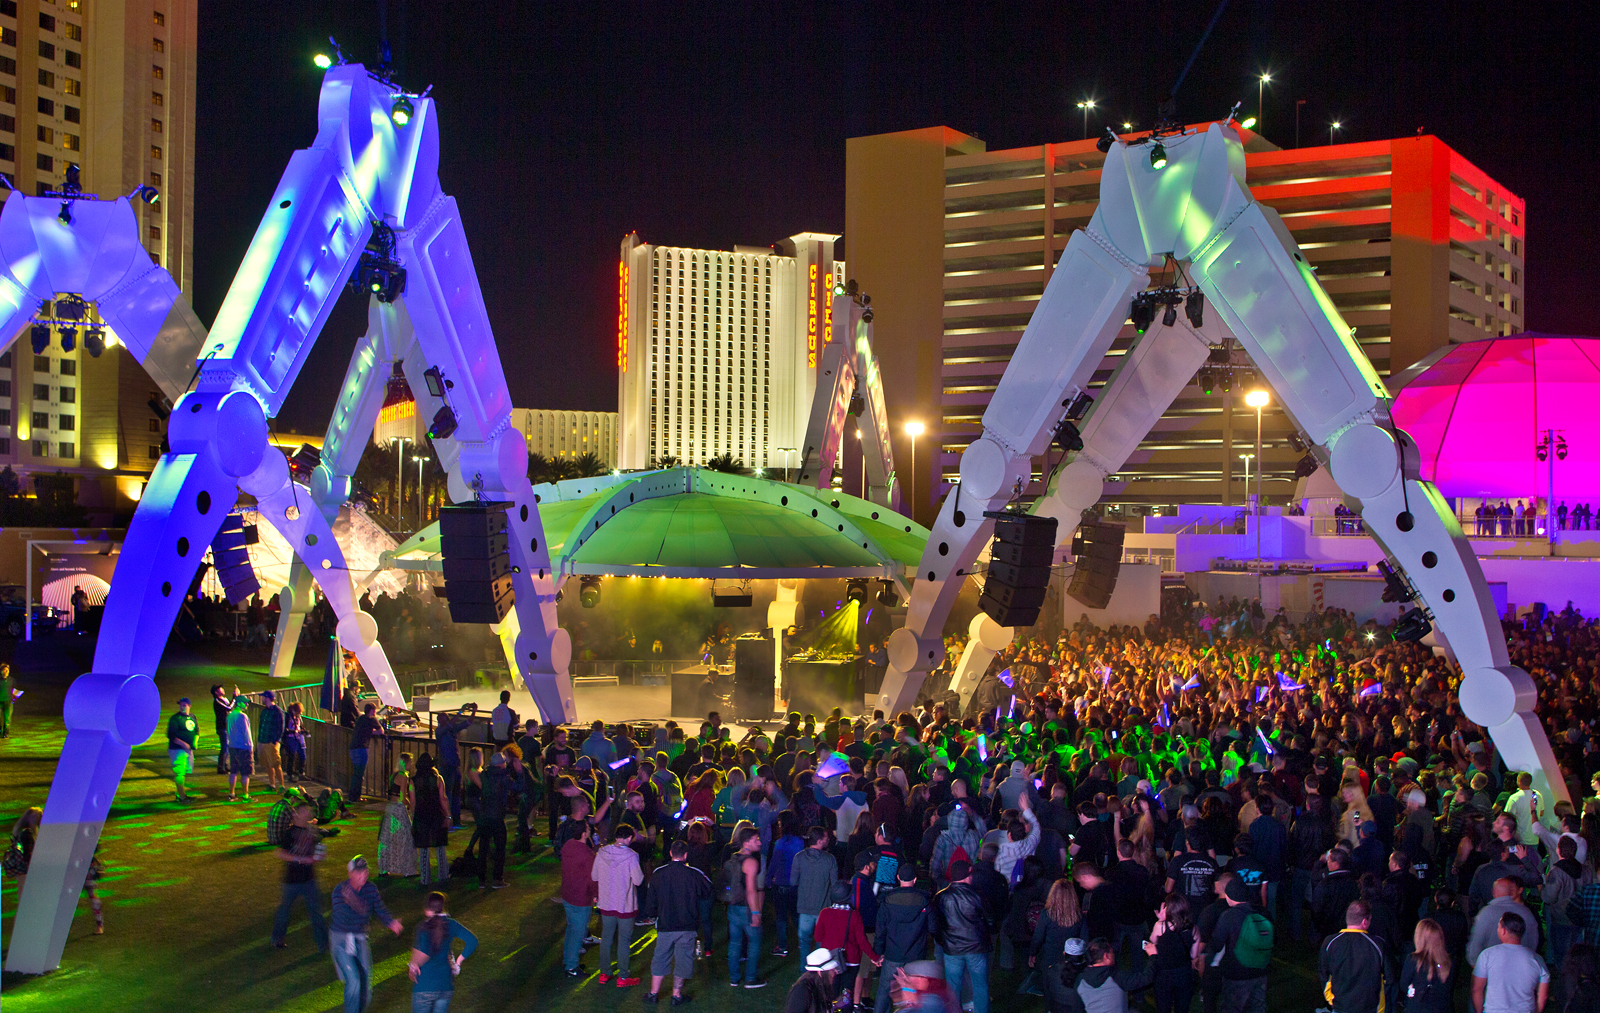 EDM Stage photo courtesy of the Las Vegas Sun